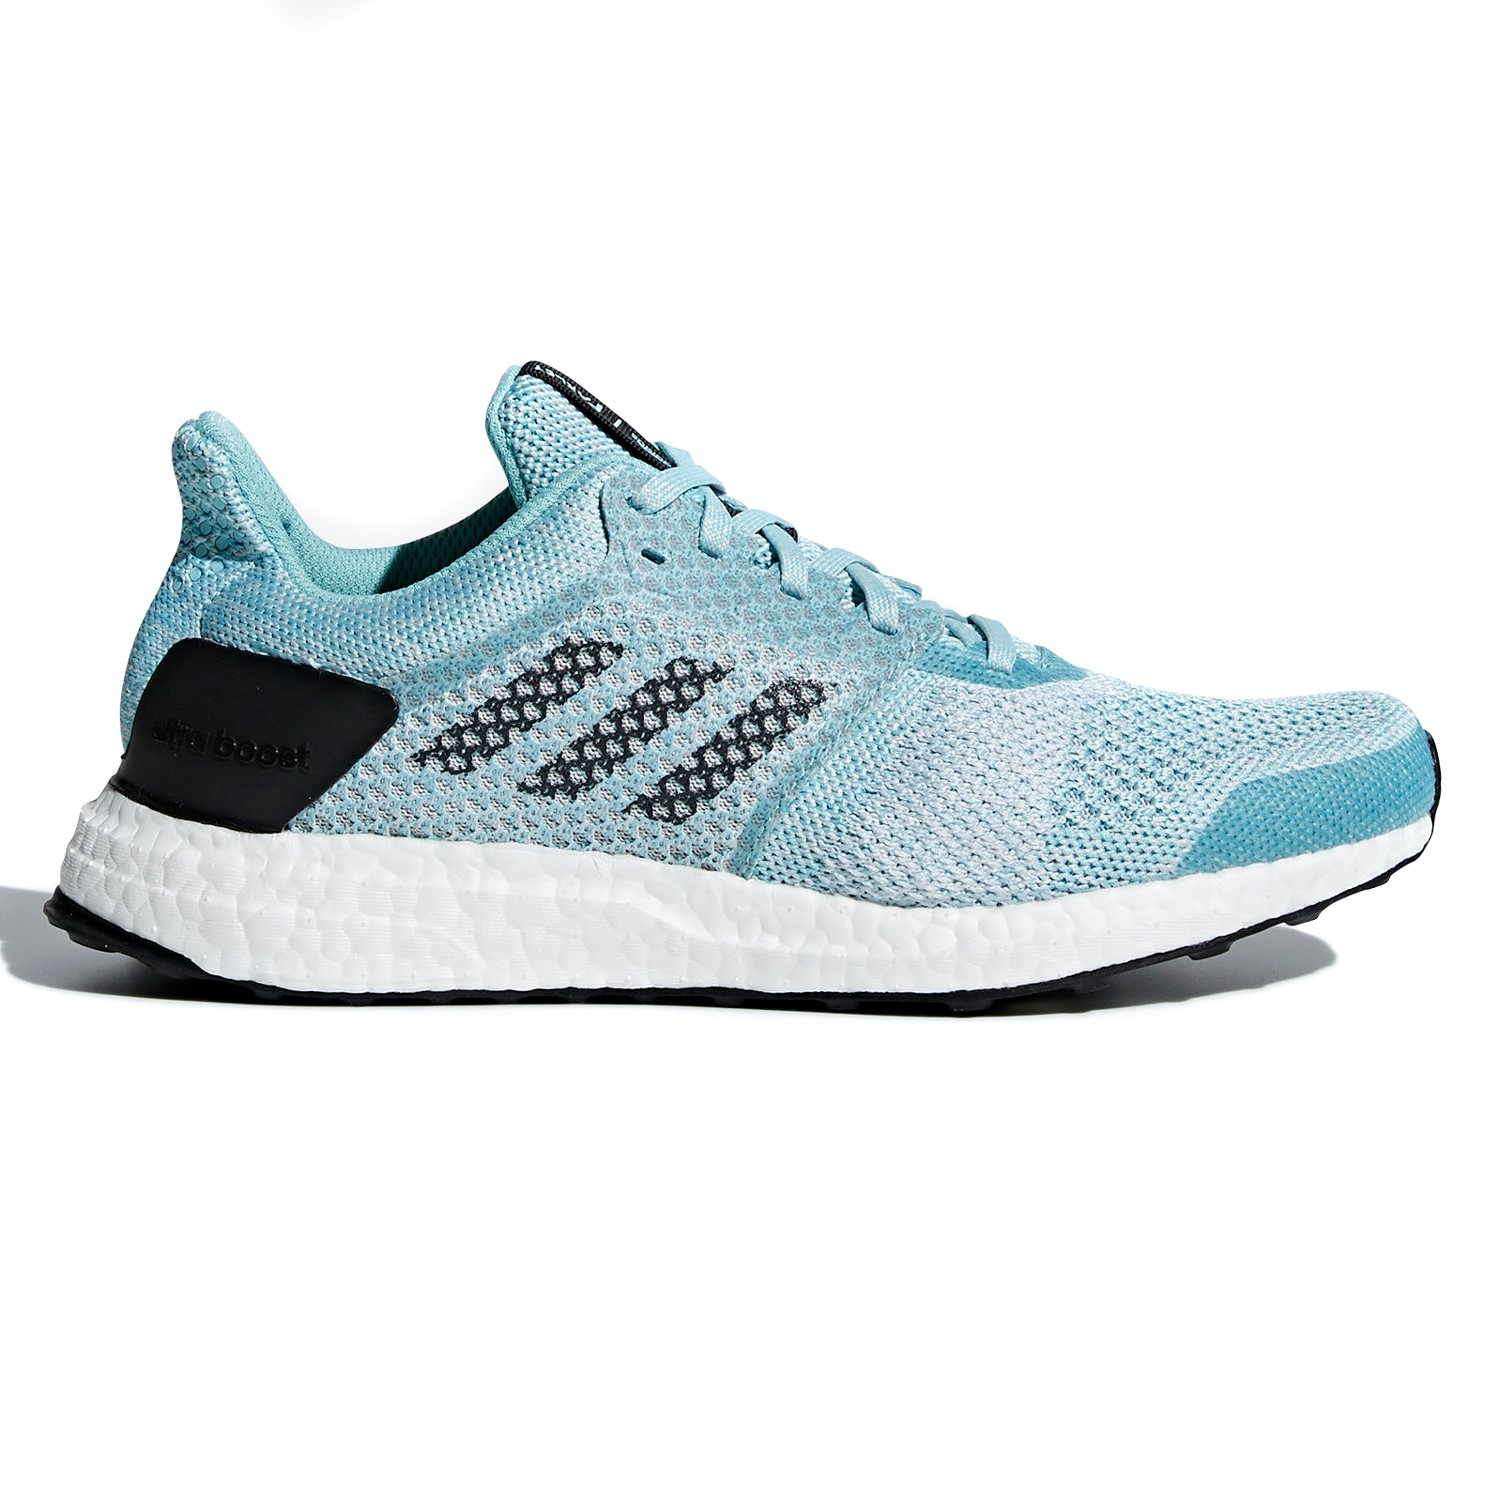 5c009676db61e Adidas Ultra Boost ST Parley - Womens Running Shoes - Blue White Ink ...